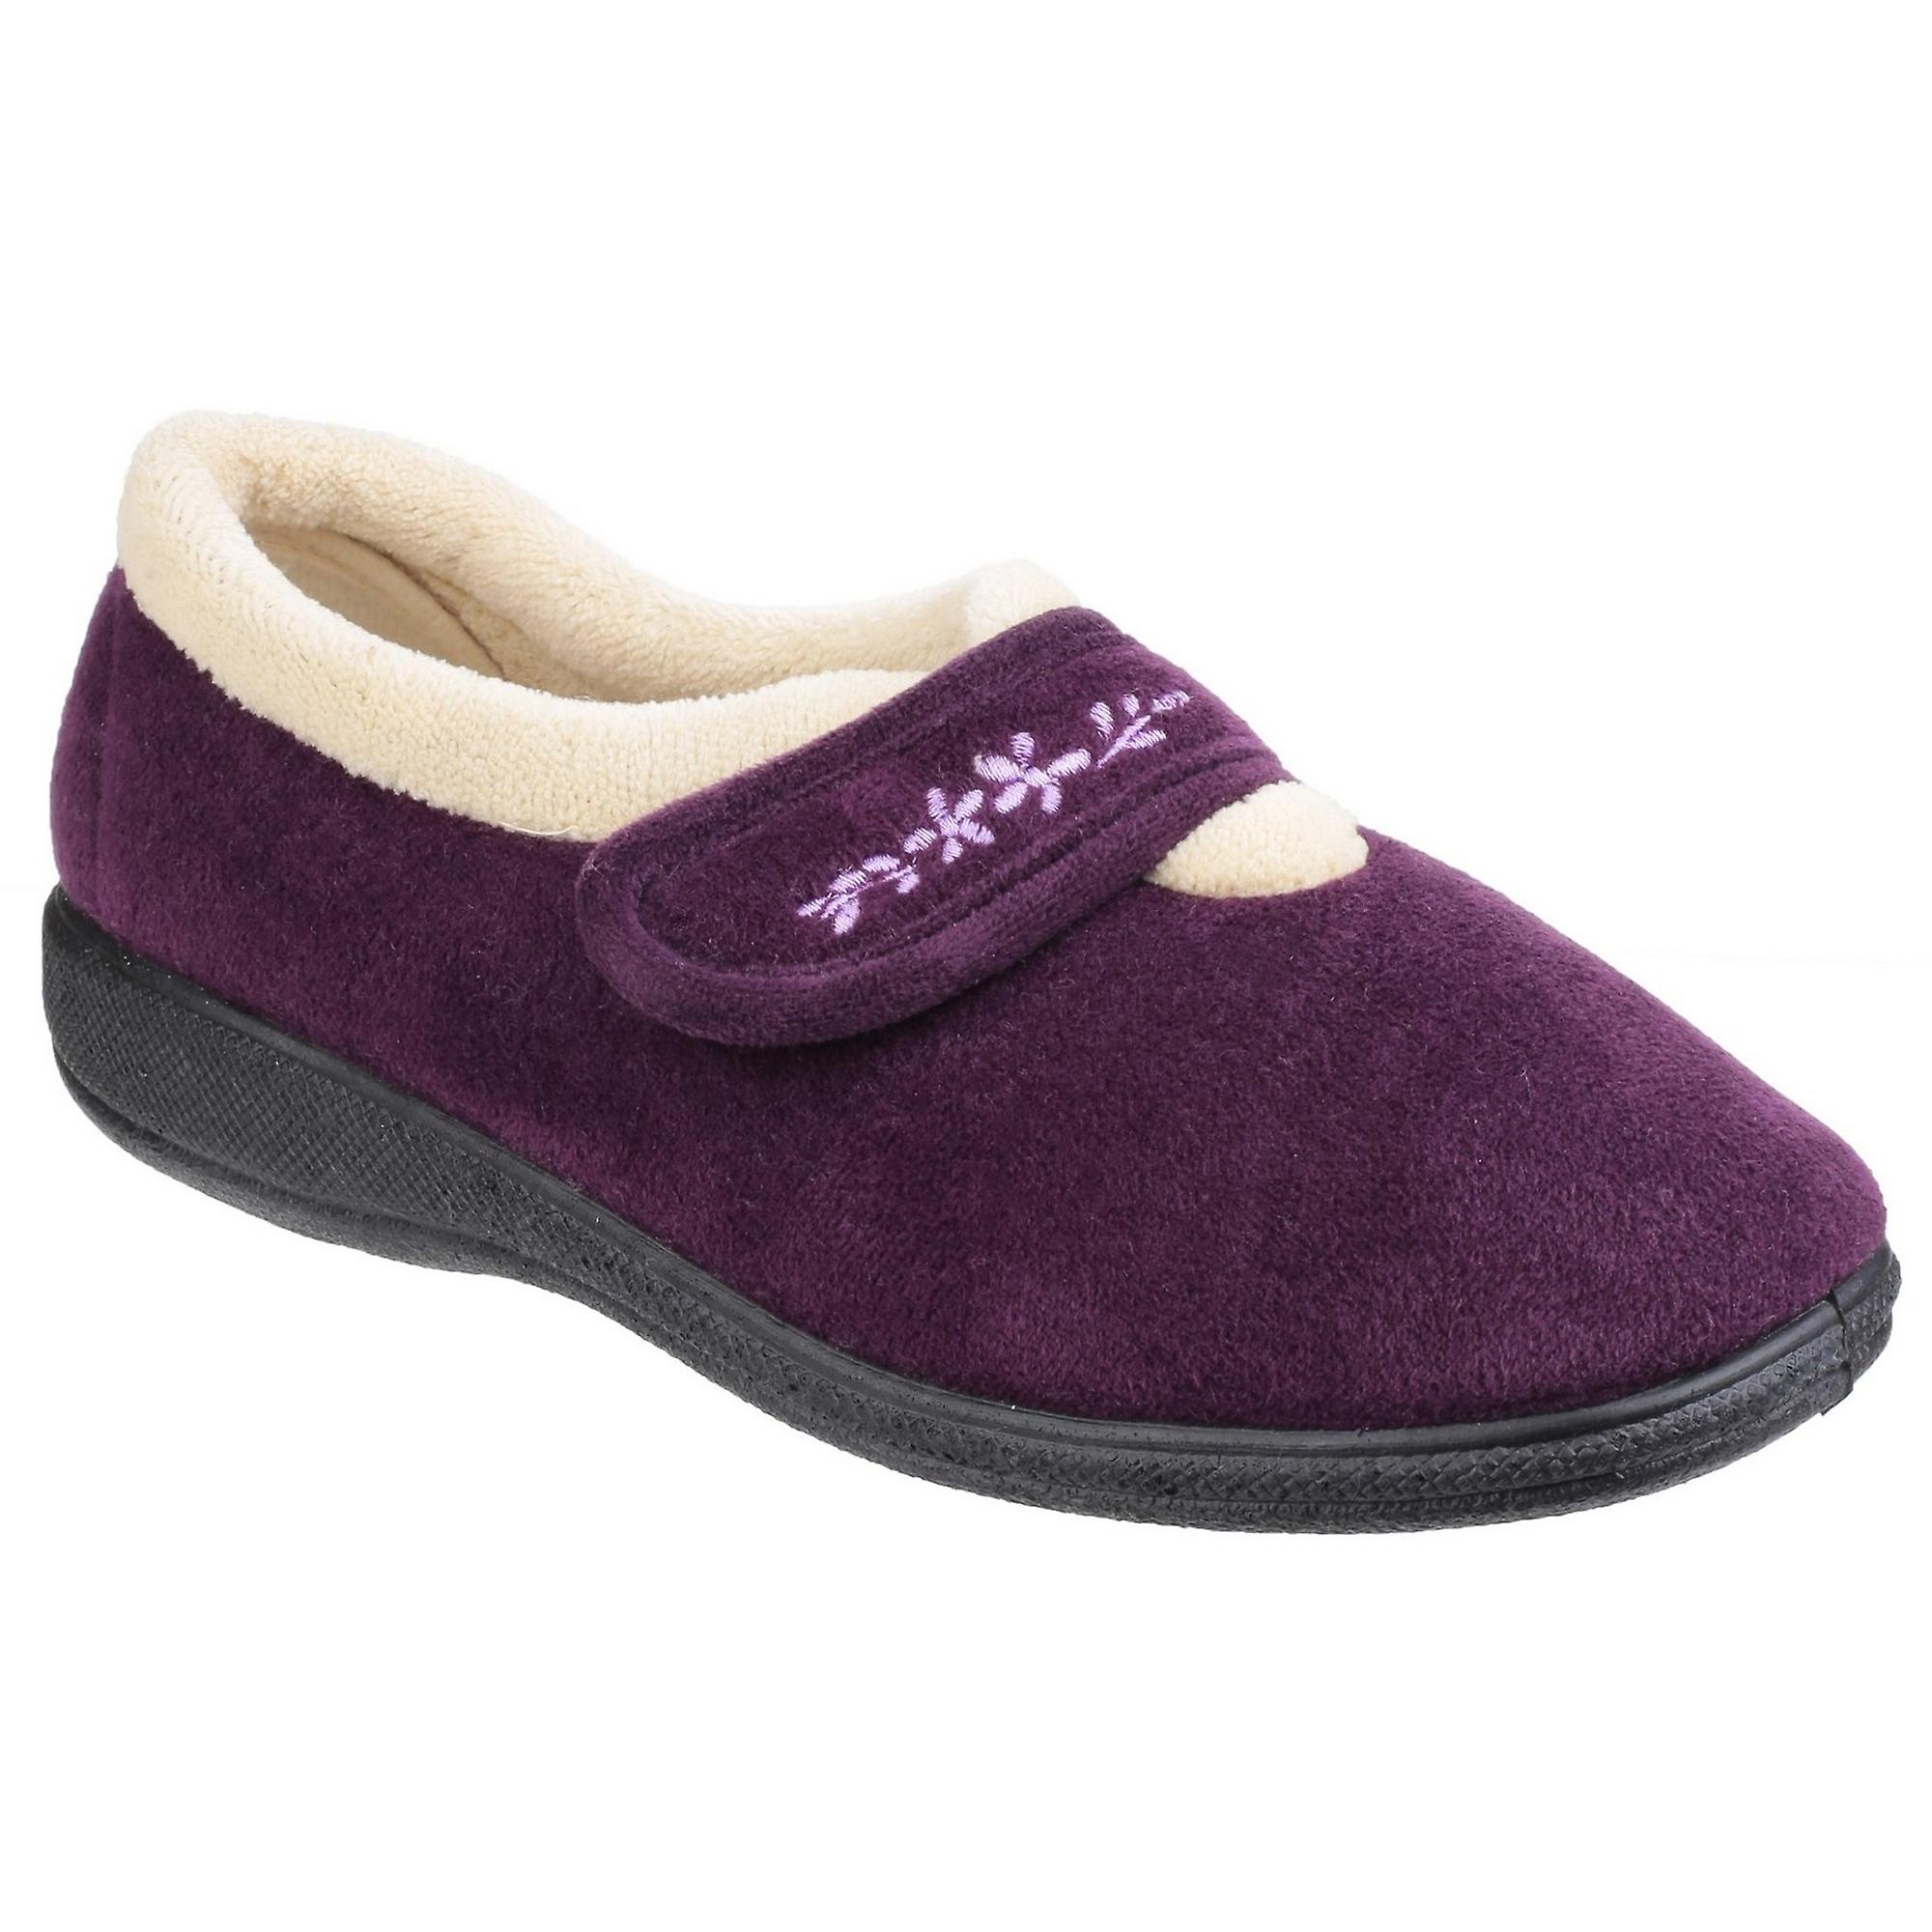 Fleet & Foster Womens/Ladies Capa Floral Touch Fasten Slippers